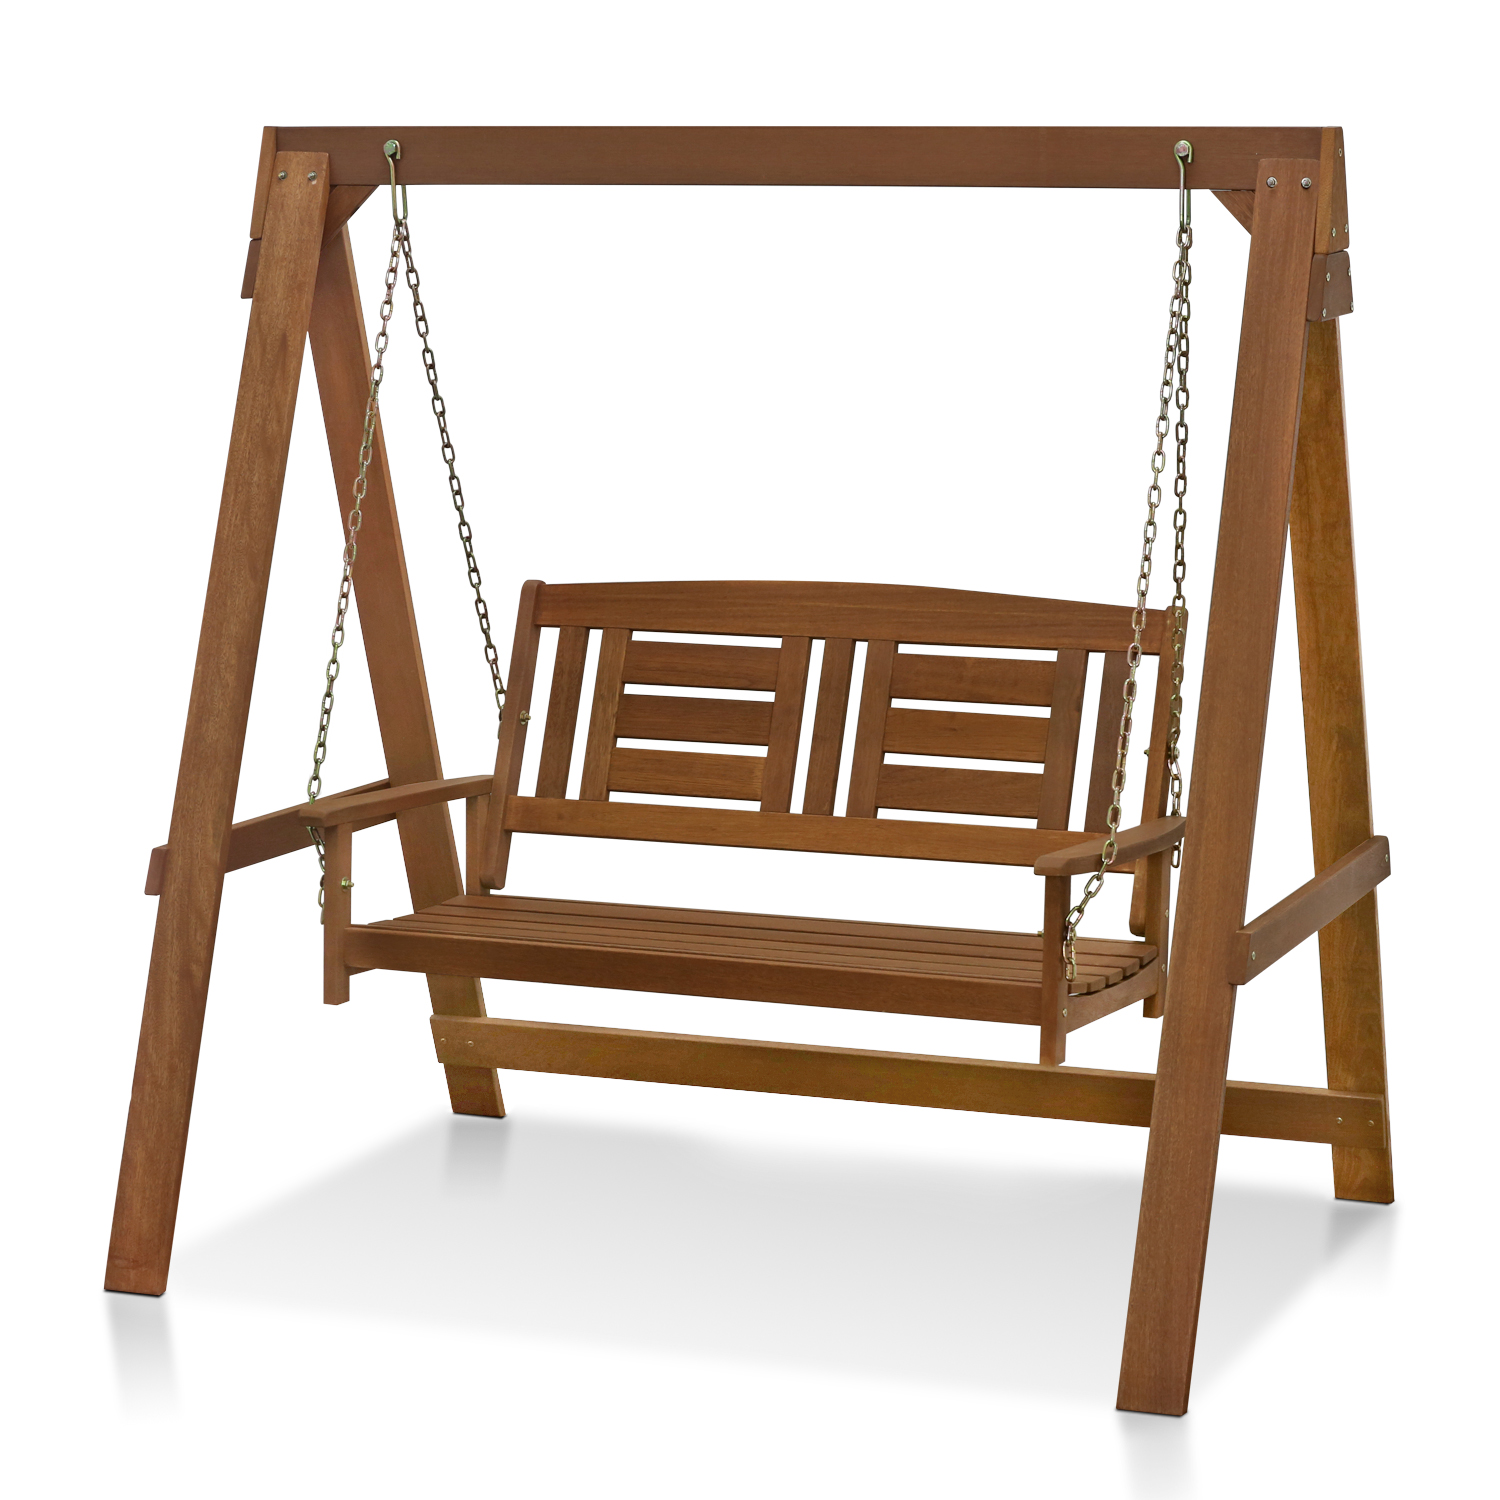 Furinno Tioman Hardwood Hanging Porch Swing with Stand in Teak Oil, FG16409 by Furinno